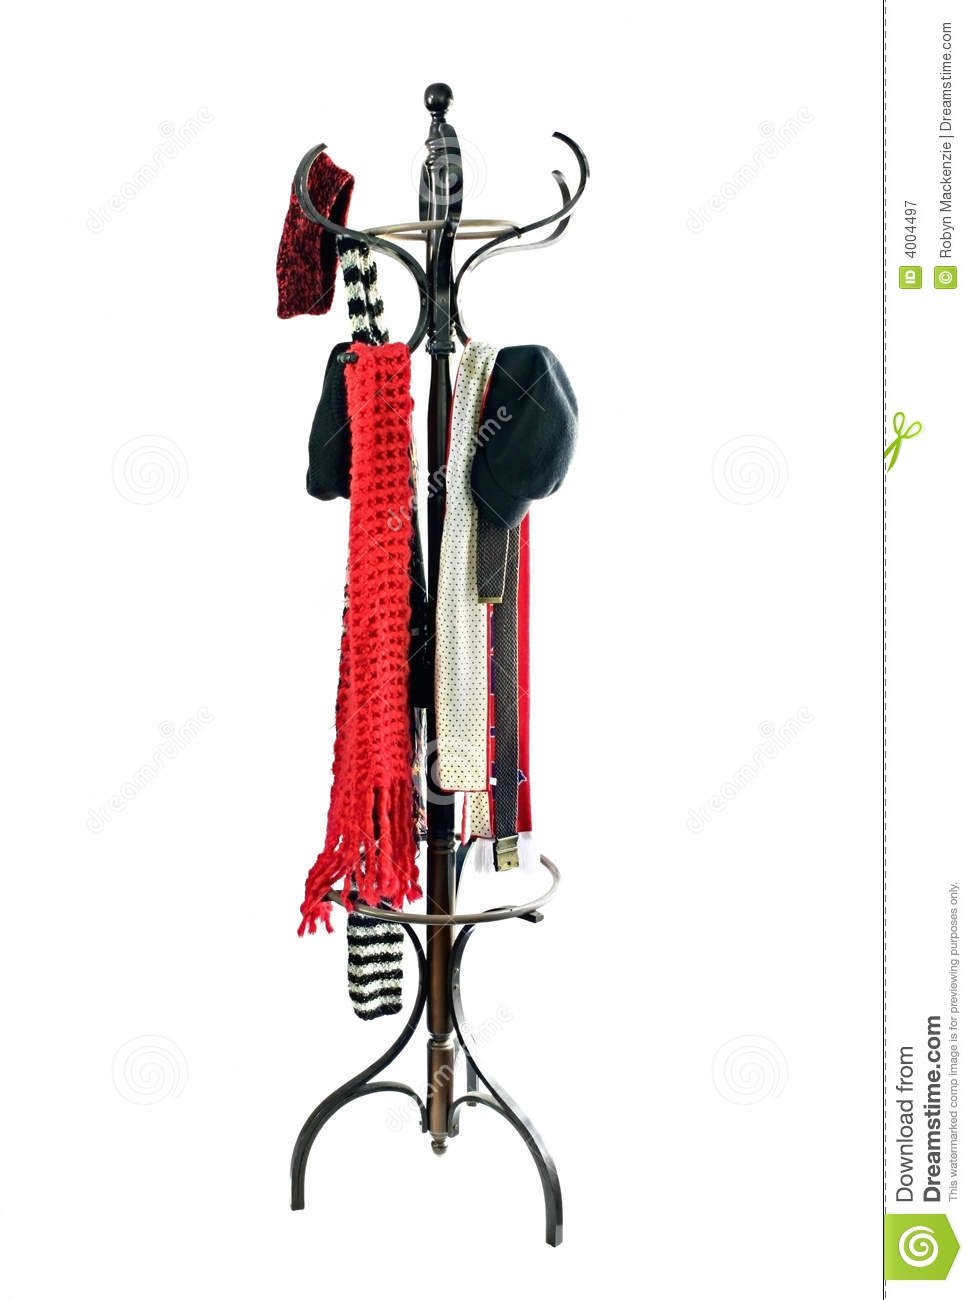 Coat Rack With Hats And Scarves Stock Image Image Of